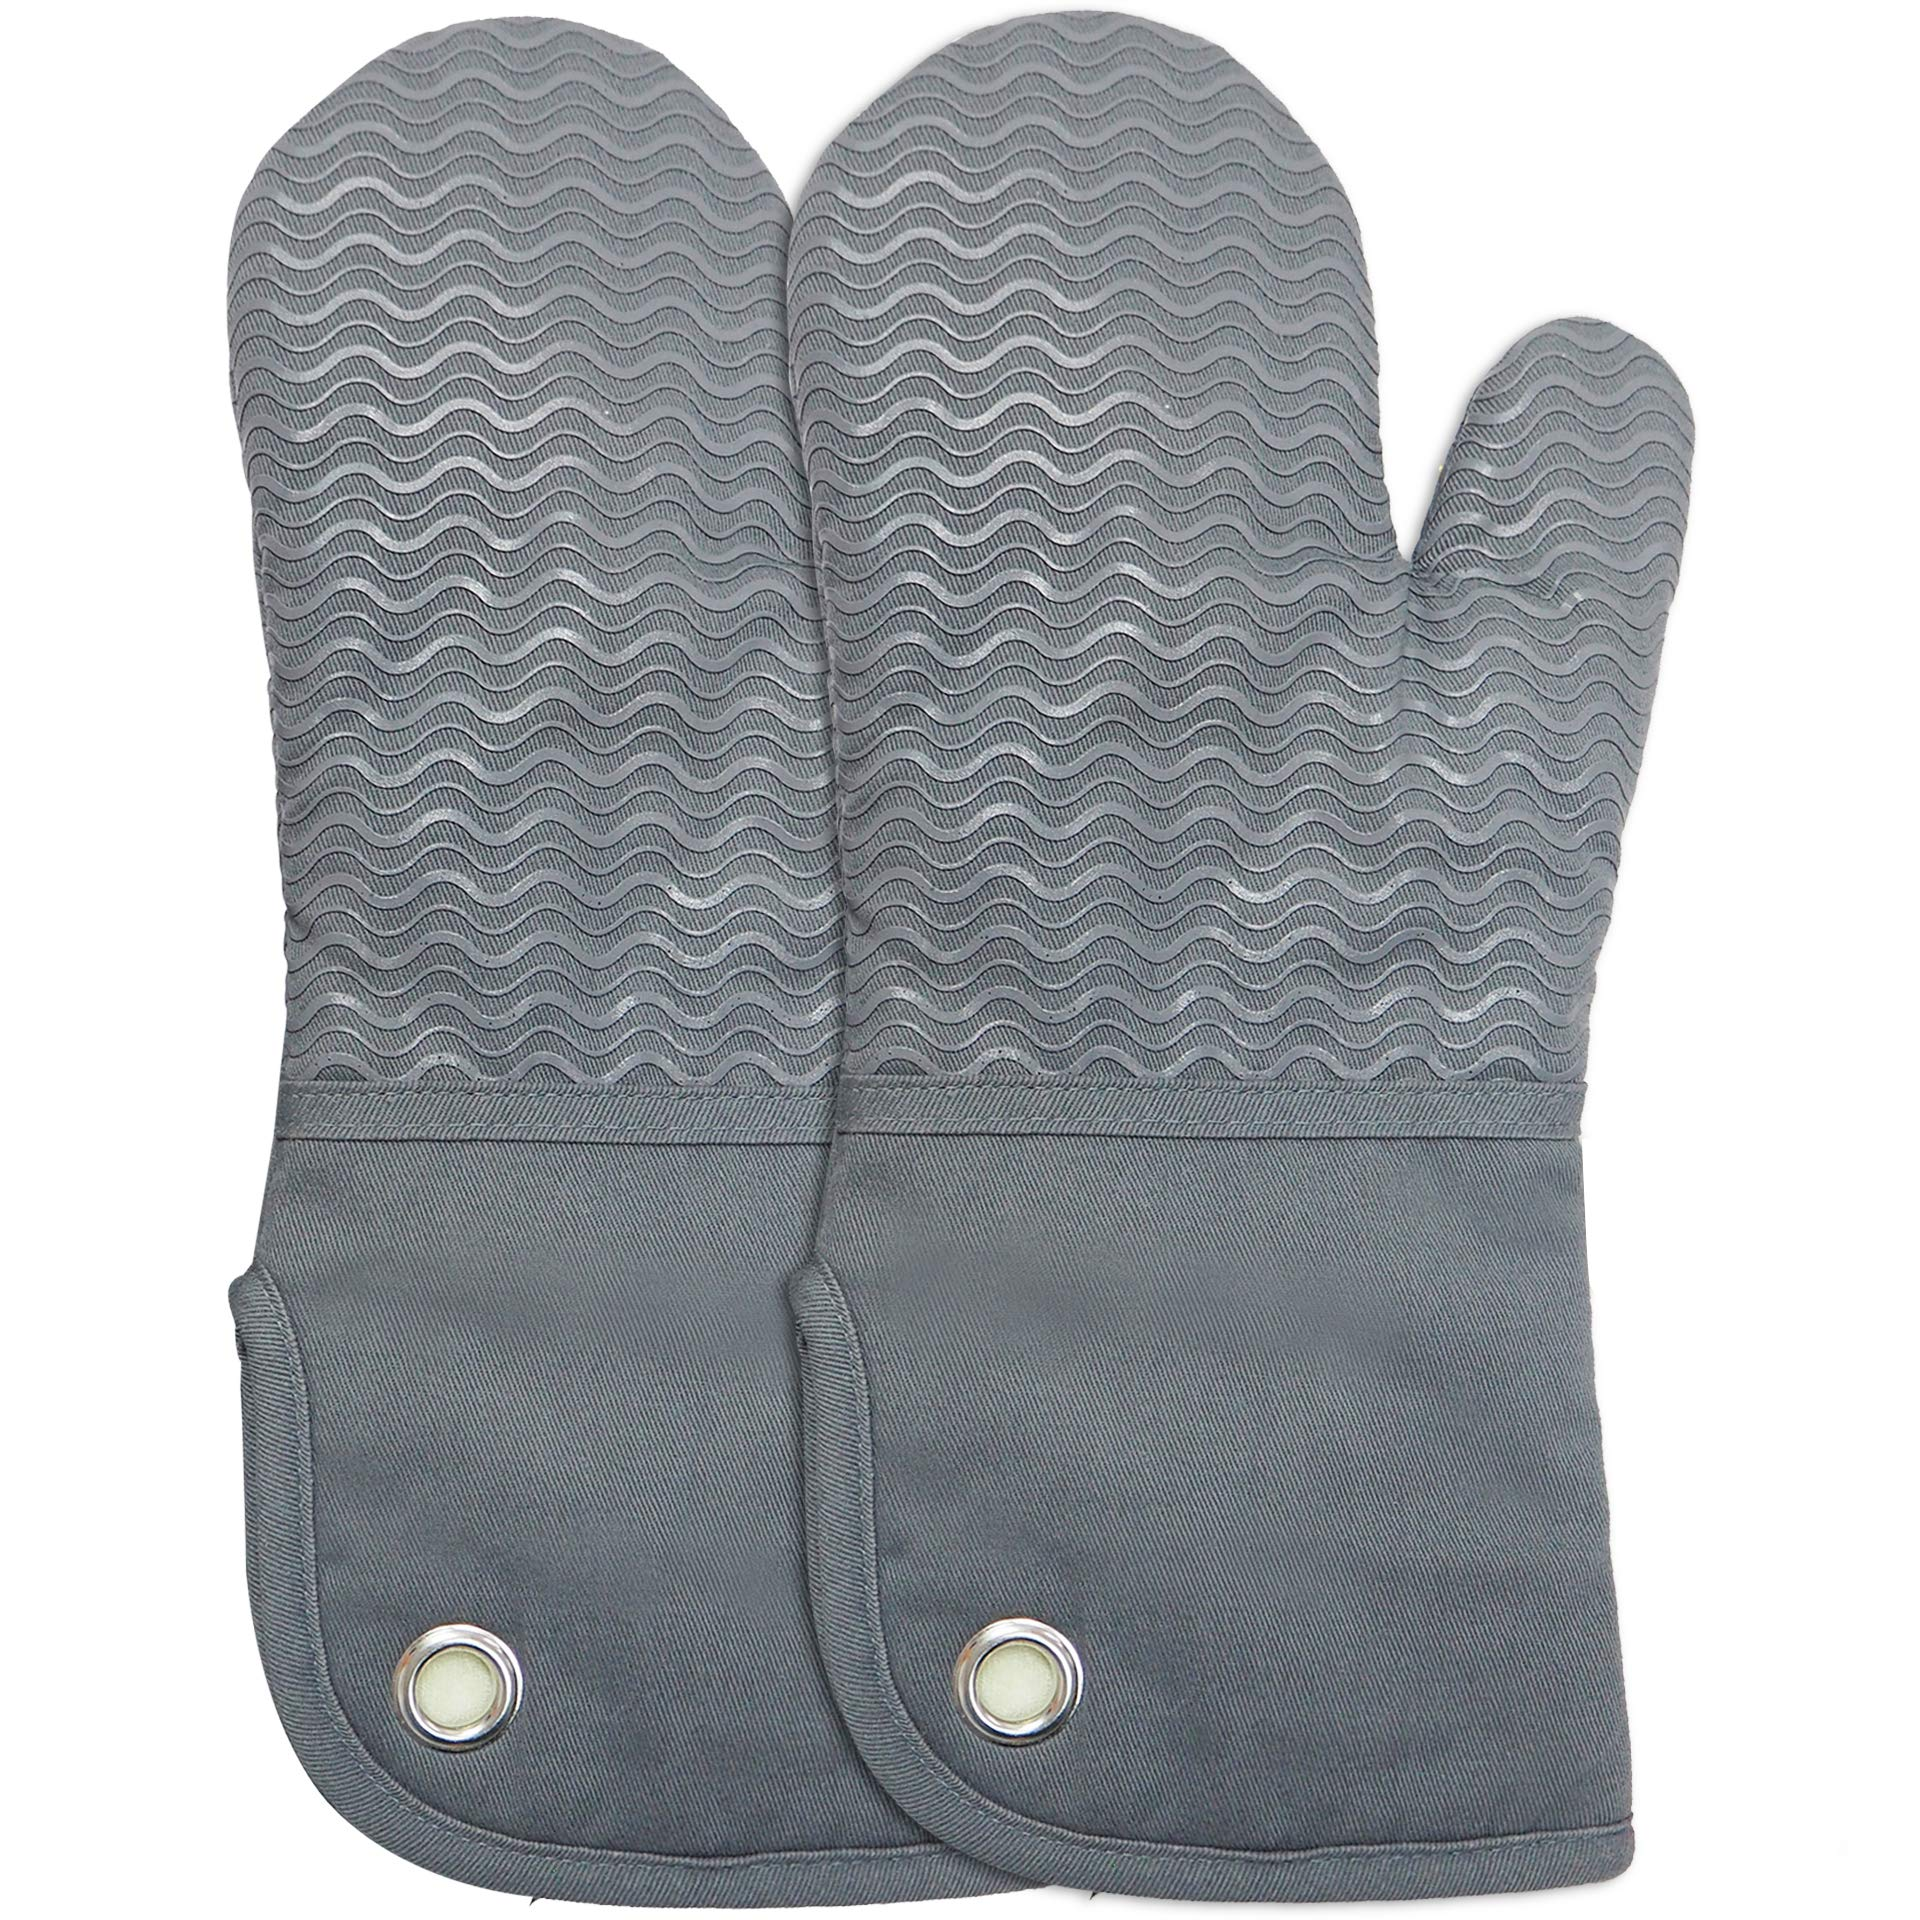 Silicone Groment Oven Mitts with Heat Resistant Non-Slip Set of 2, Cotton Quilting Lining, Oven Gloves and Pot Holders Kitchen Set for BBQ Cooking Baking, Grilling, Barbecue, Machine Washable Grey by EnjoyLife Inc